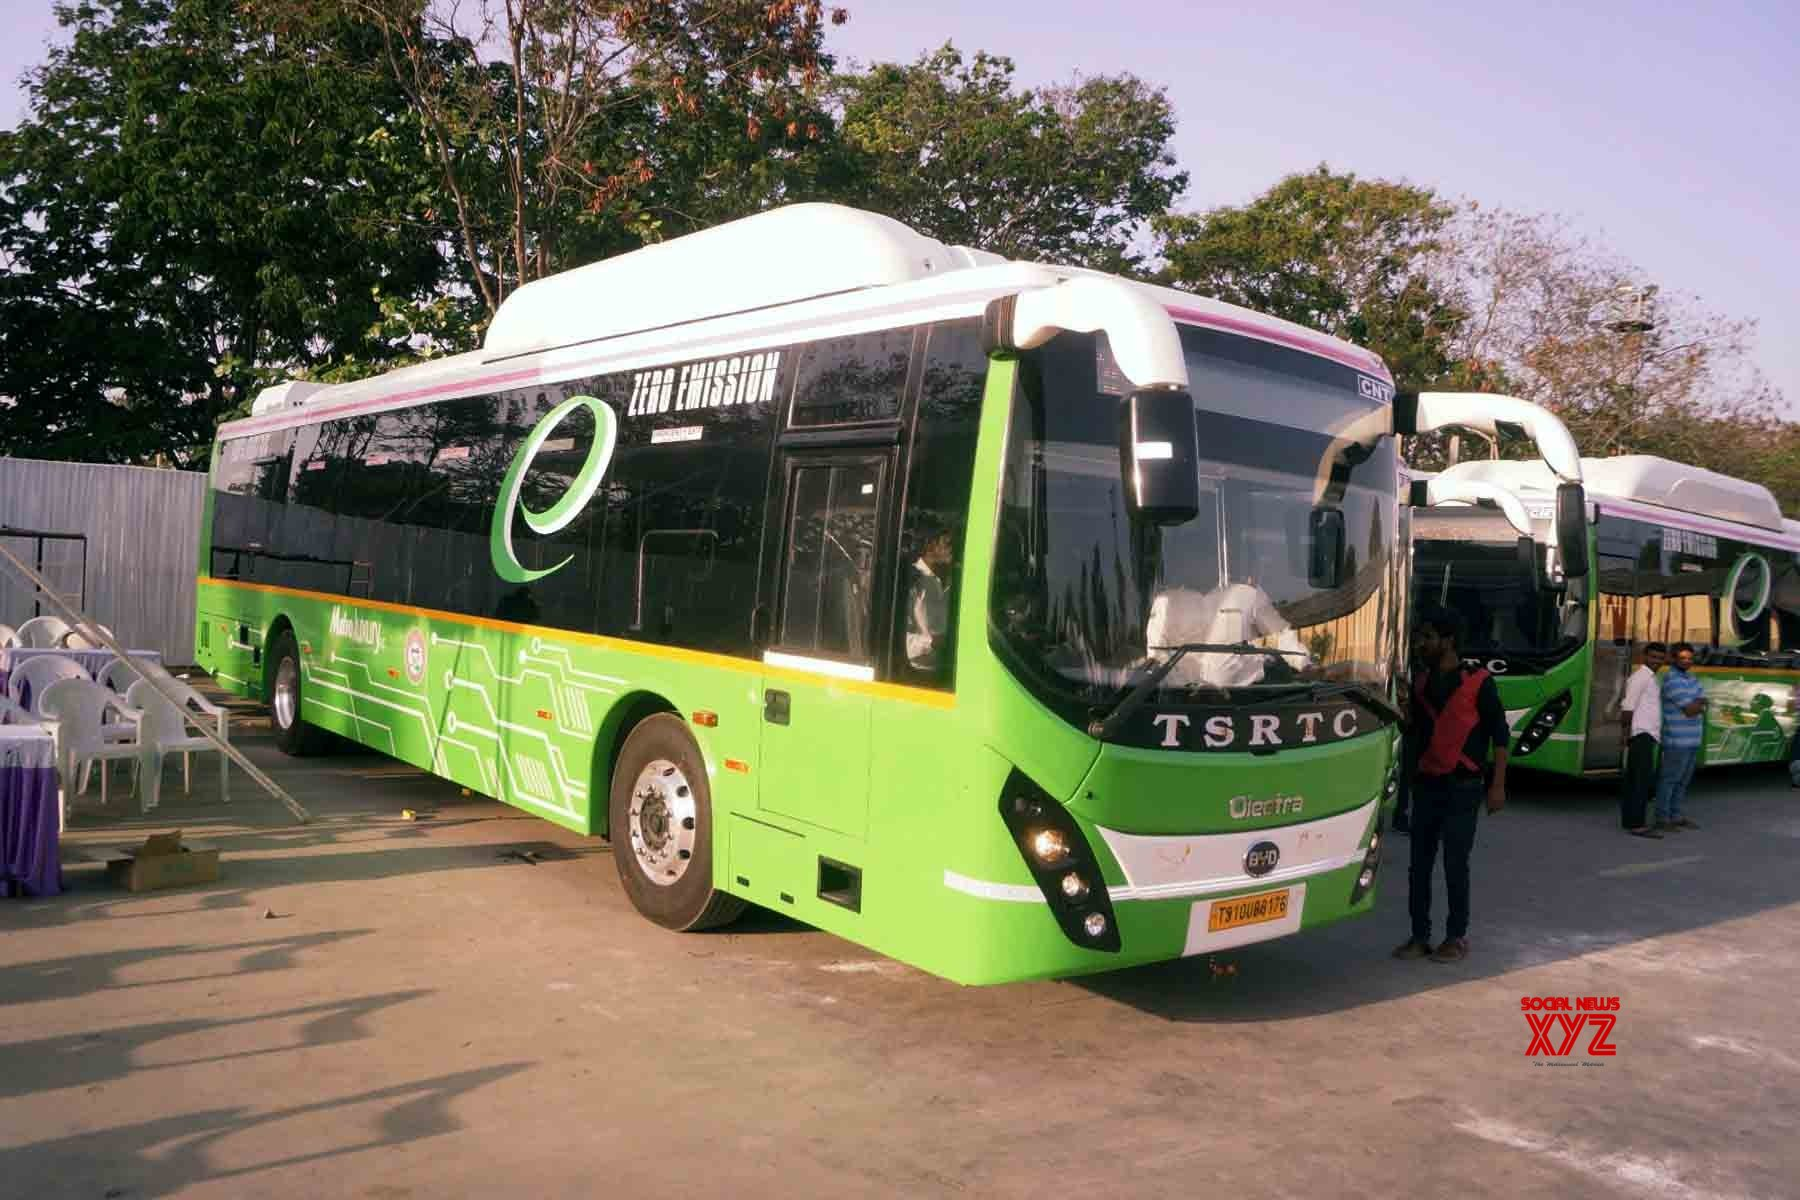 Delhi to start getting 300 e-buses from Jan 2022: DTC